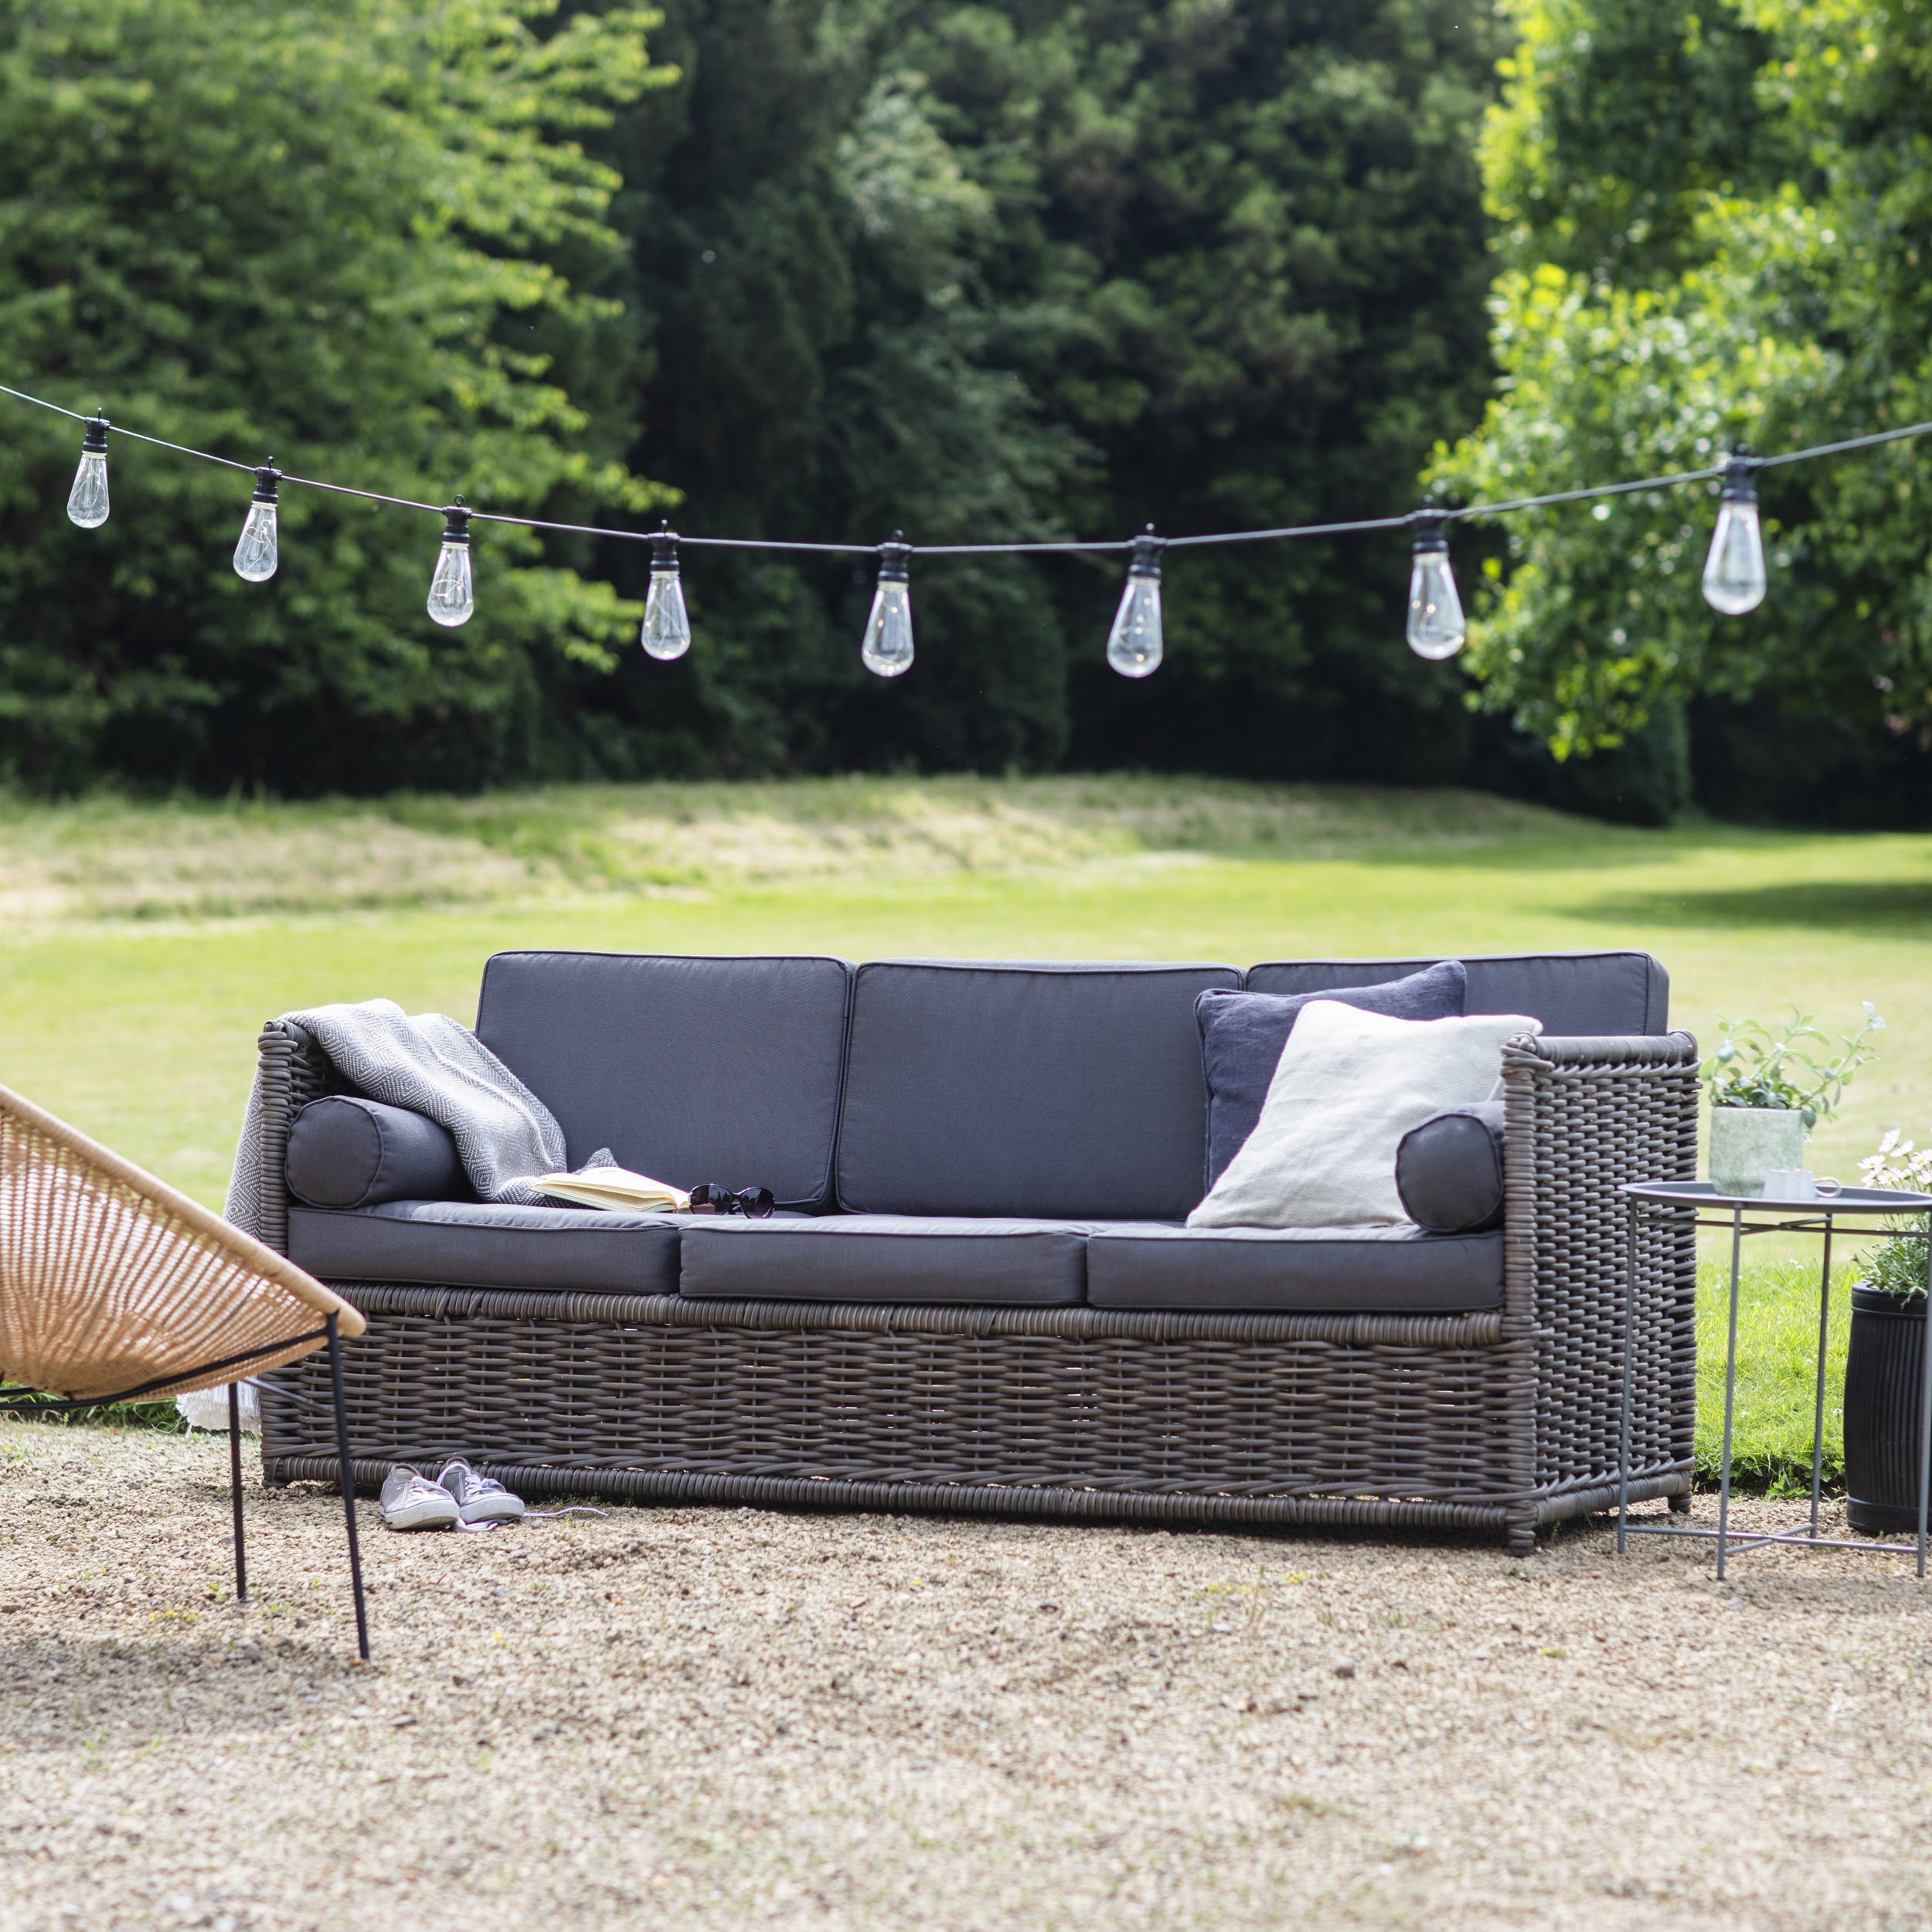 Harting Rattan Garden Sofa Groovy Home Free Uk Delivery